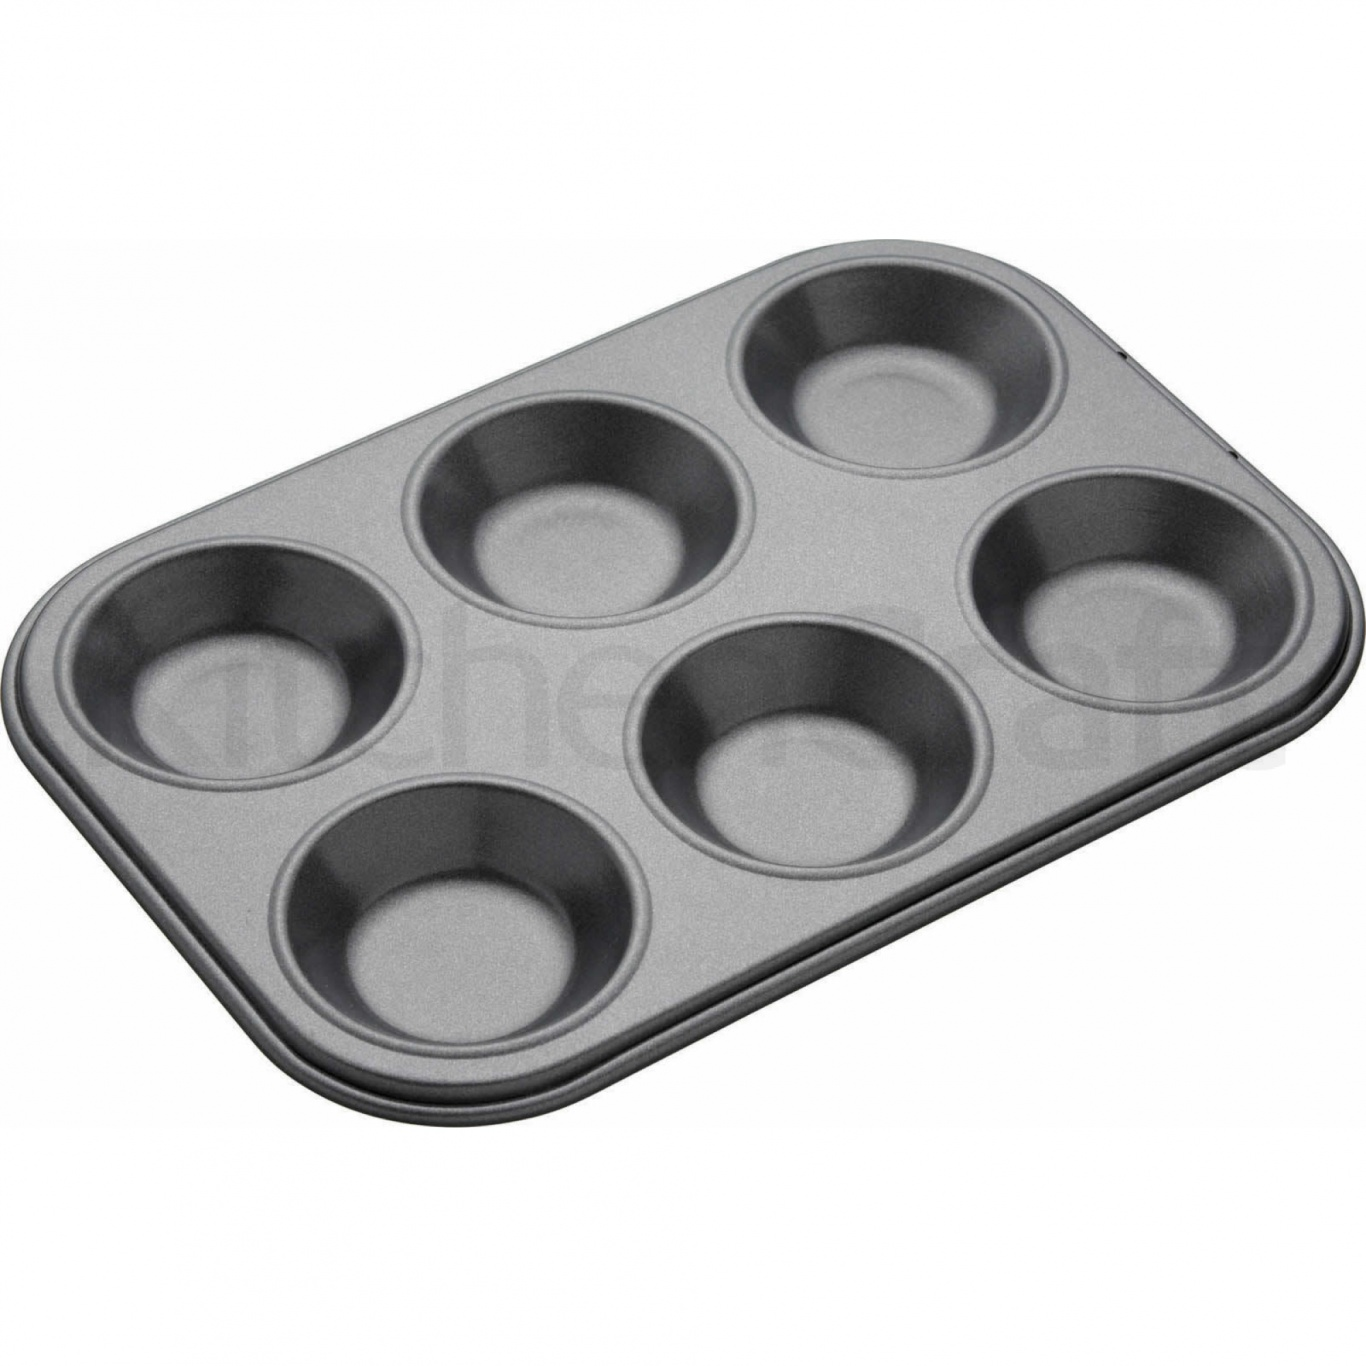 Image of Non Stick Shallow 6 Hole Baking Pan